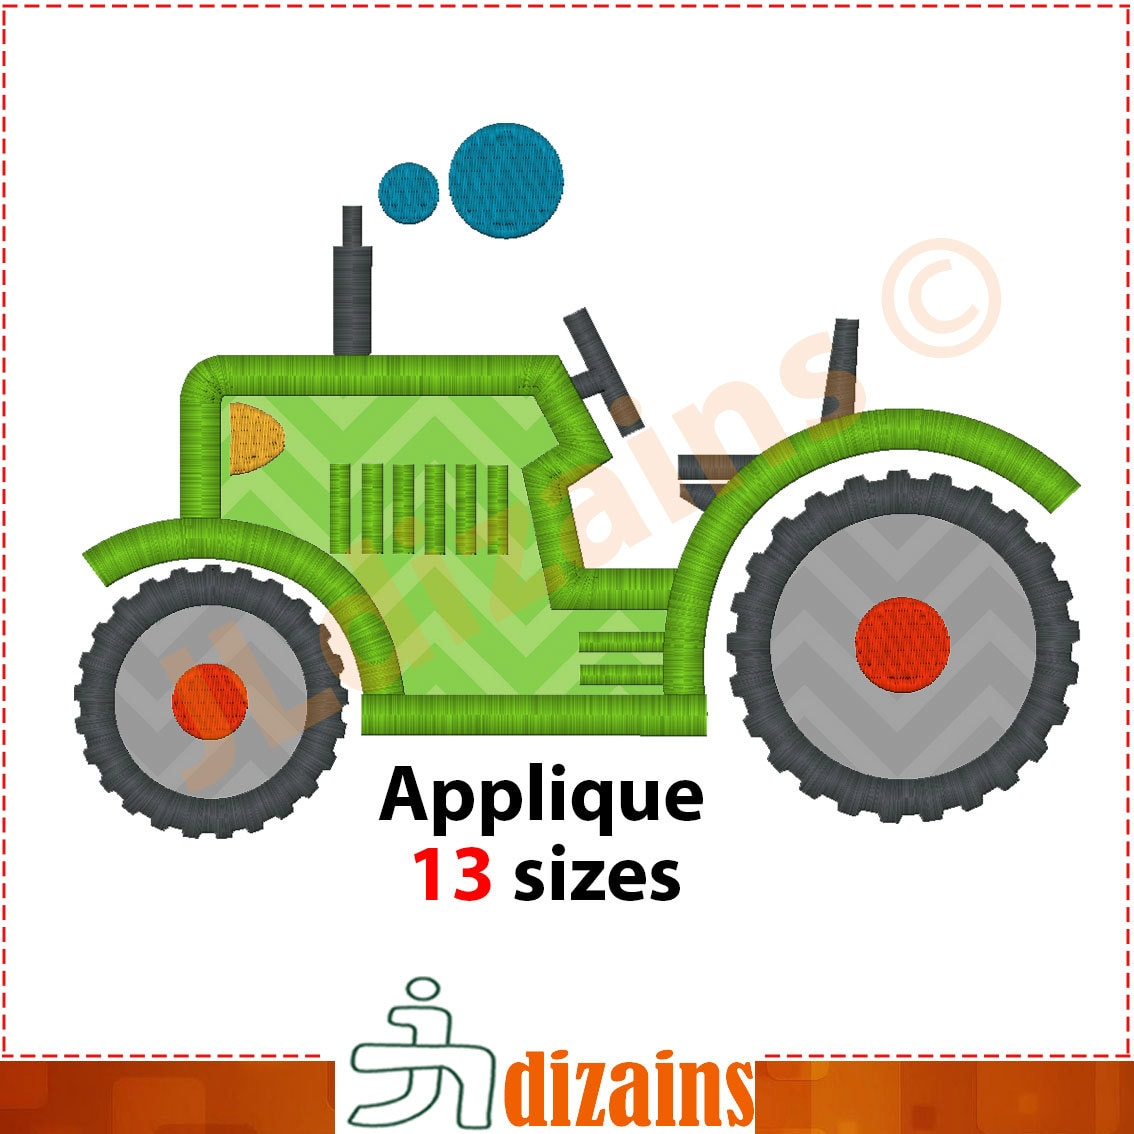 Tractor applique design embroidery